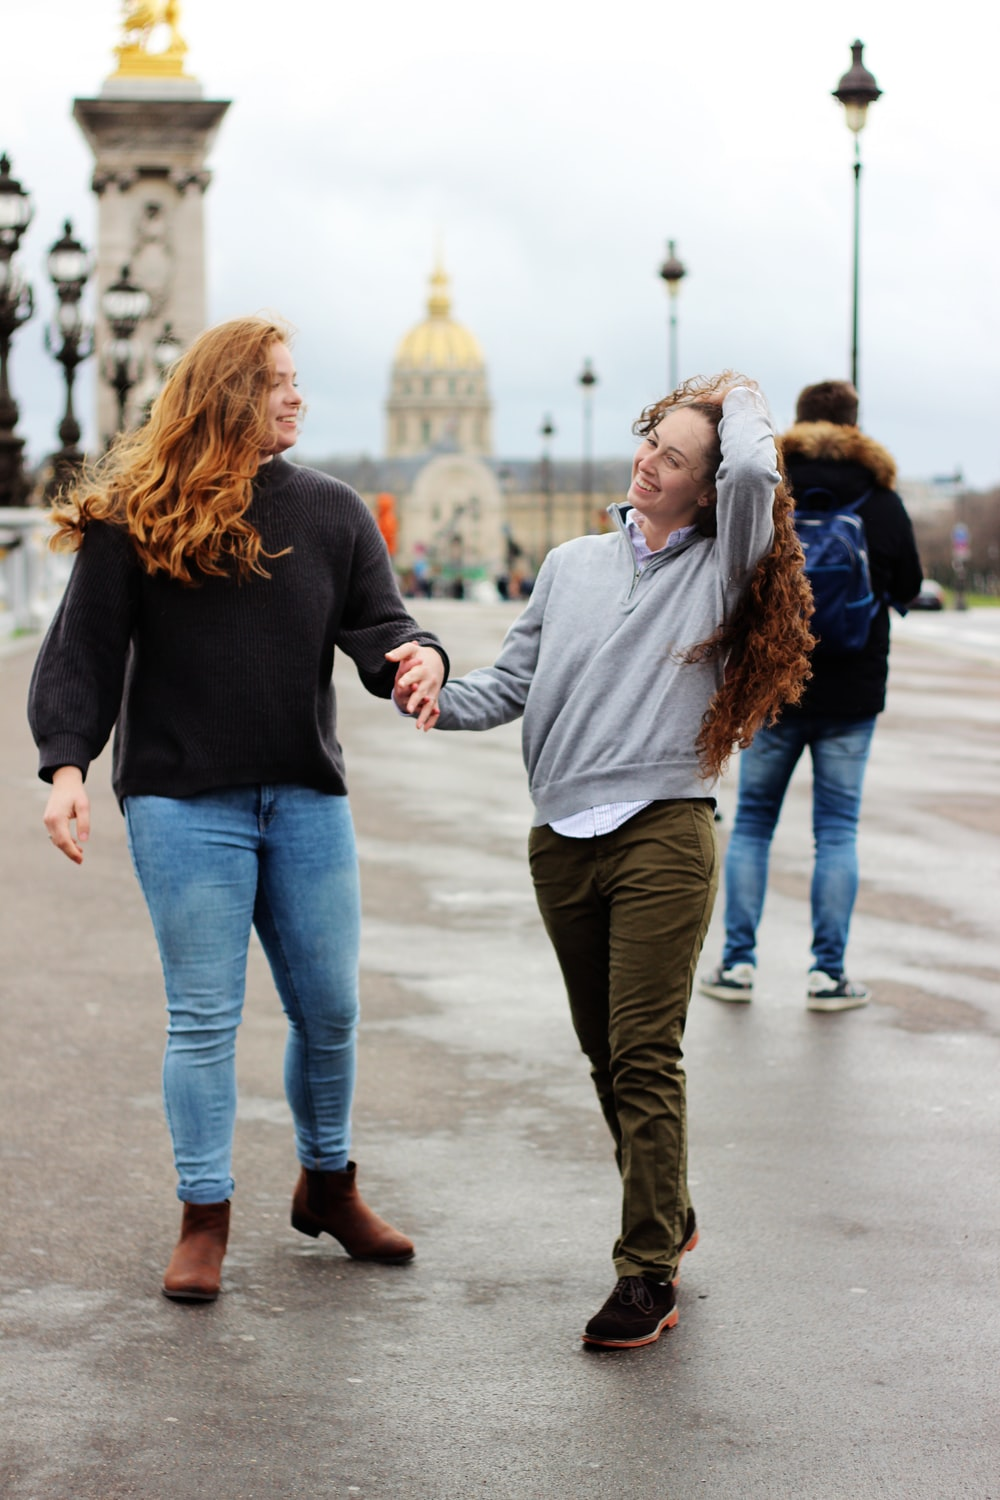 two women holding hands together while walking on road during daytime